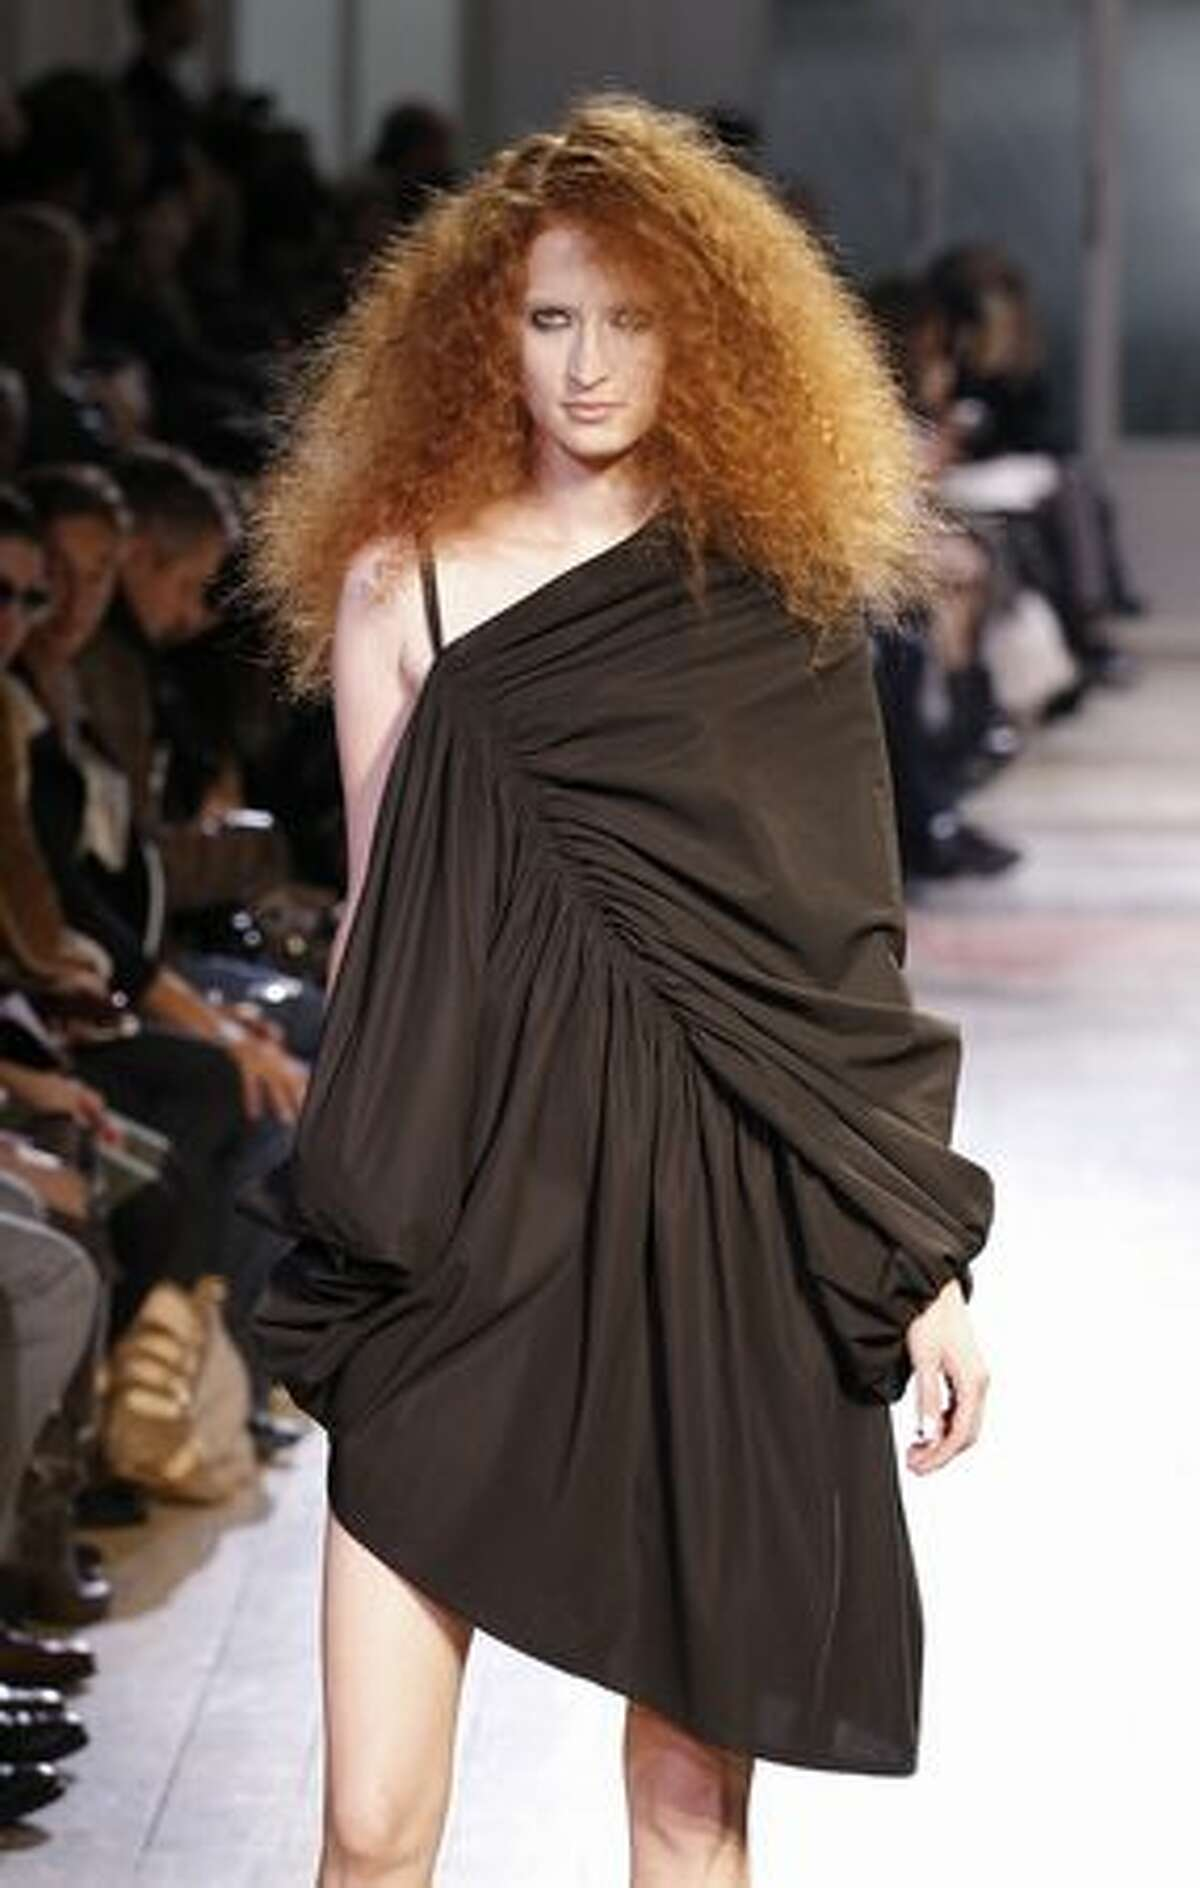 A model presents a creation by Japanese designer Limi Feu during the Spring/Summer 2011 ready-to-wear collection show in Paris.